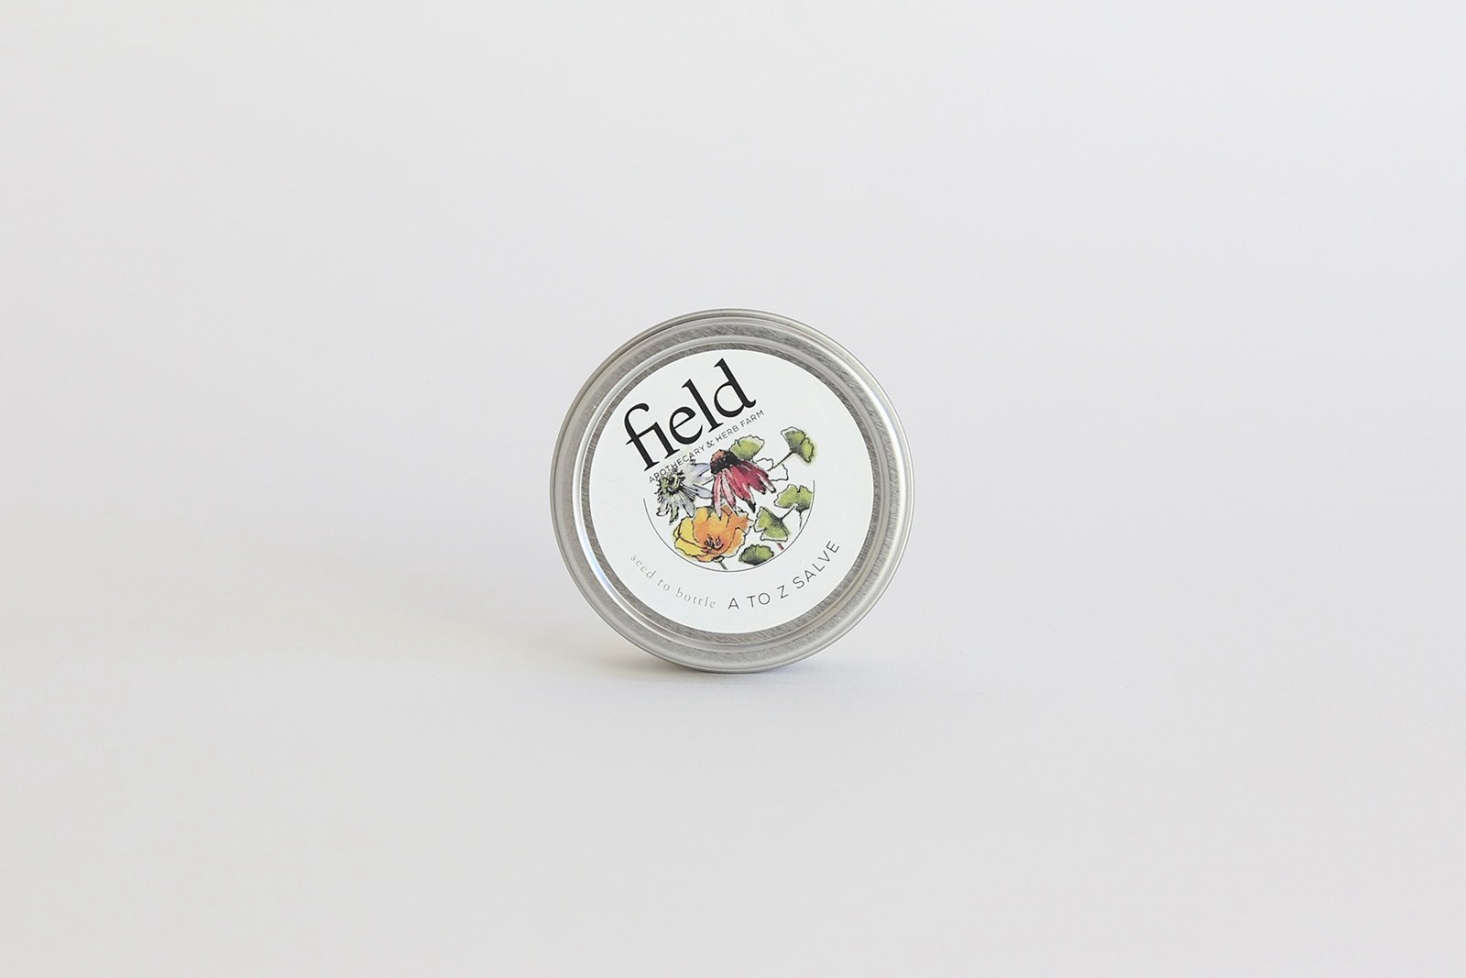 A tin of A to Z All-Purpose Healing Balm with comfrey, calendula, and peppermint from Field Apothecary in New York&#8